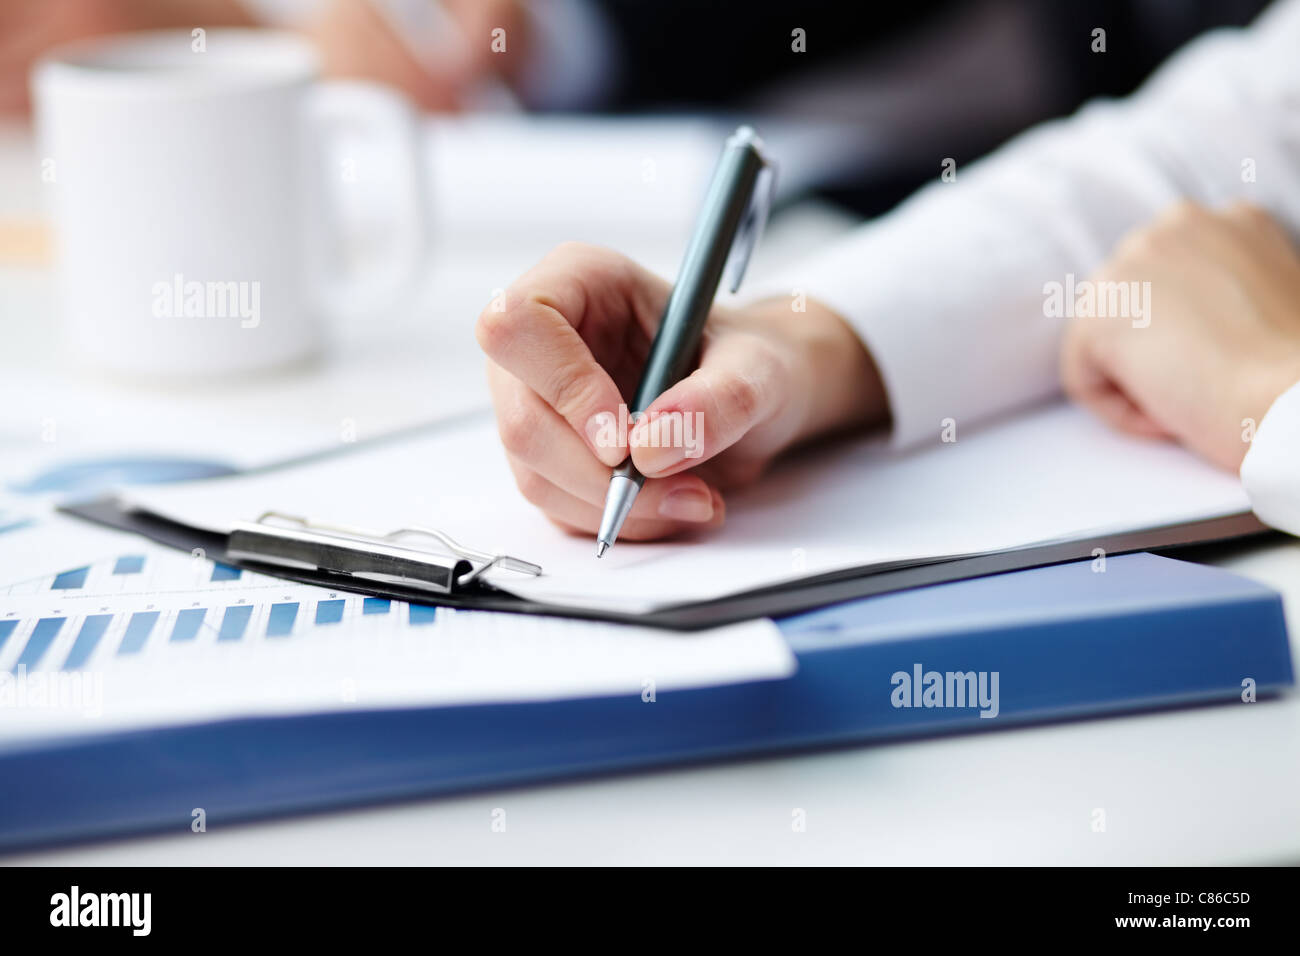 Close-up of female hand making notes - Stock Image